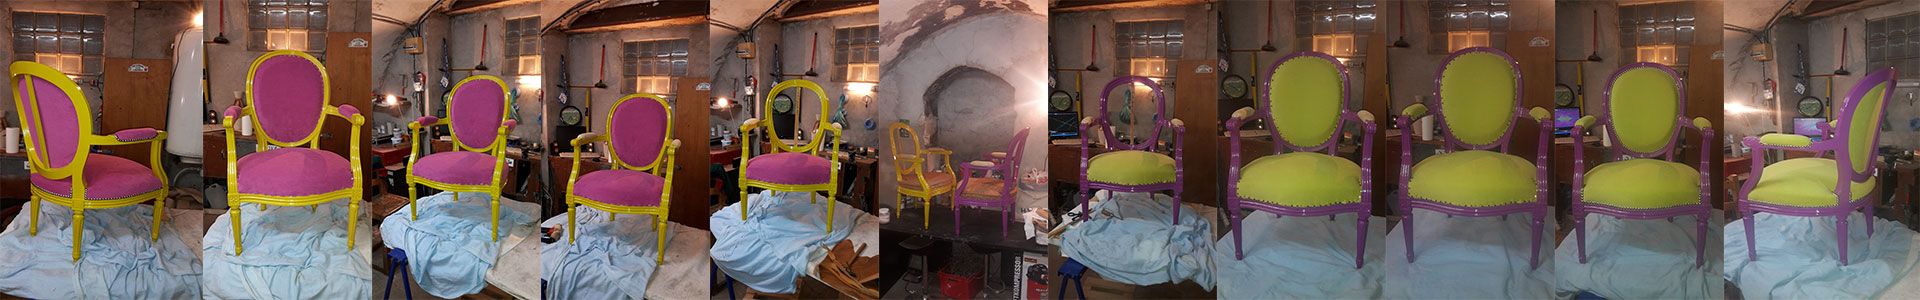 Fauteuils louis xvi m daillon pop art atelier relook 39 art - Tapissier decorateur montpellier ...